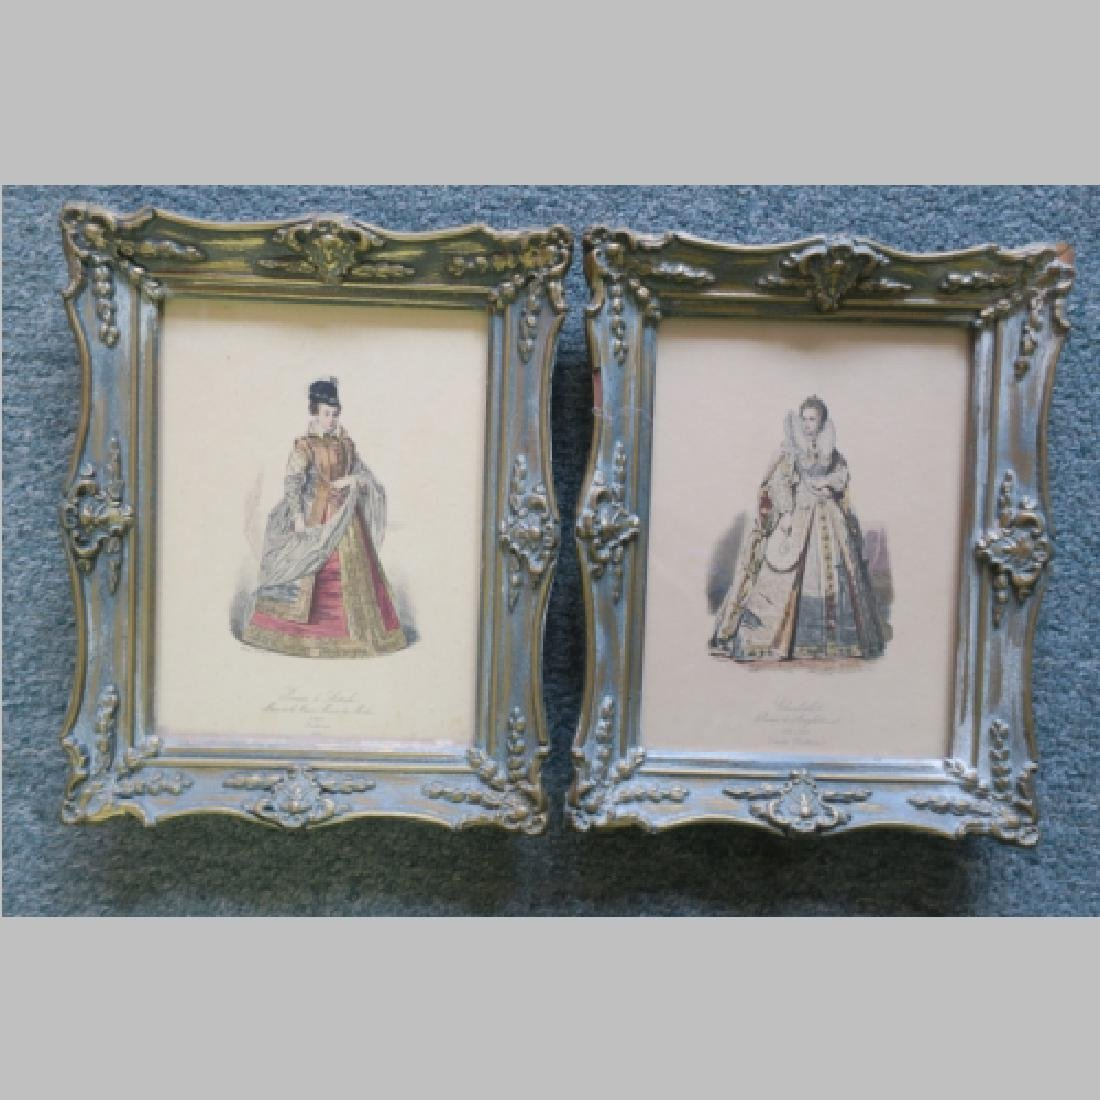 Two Prints of Female Royalty: